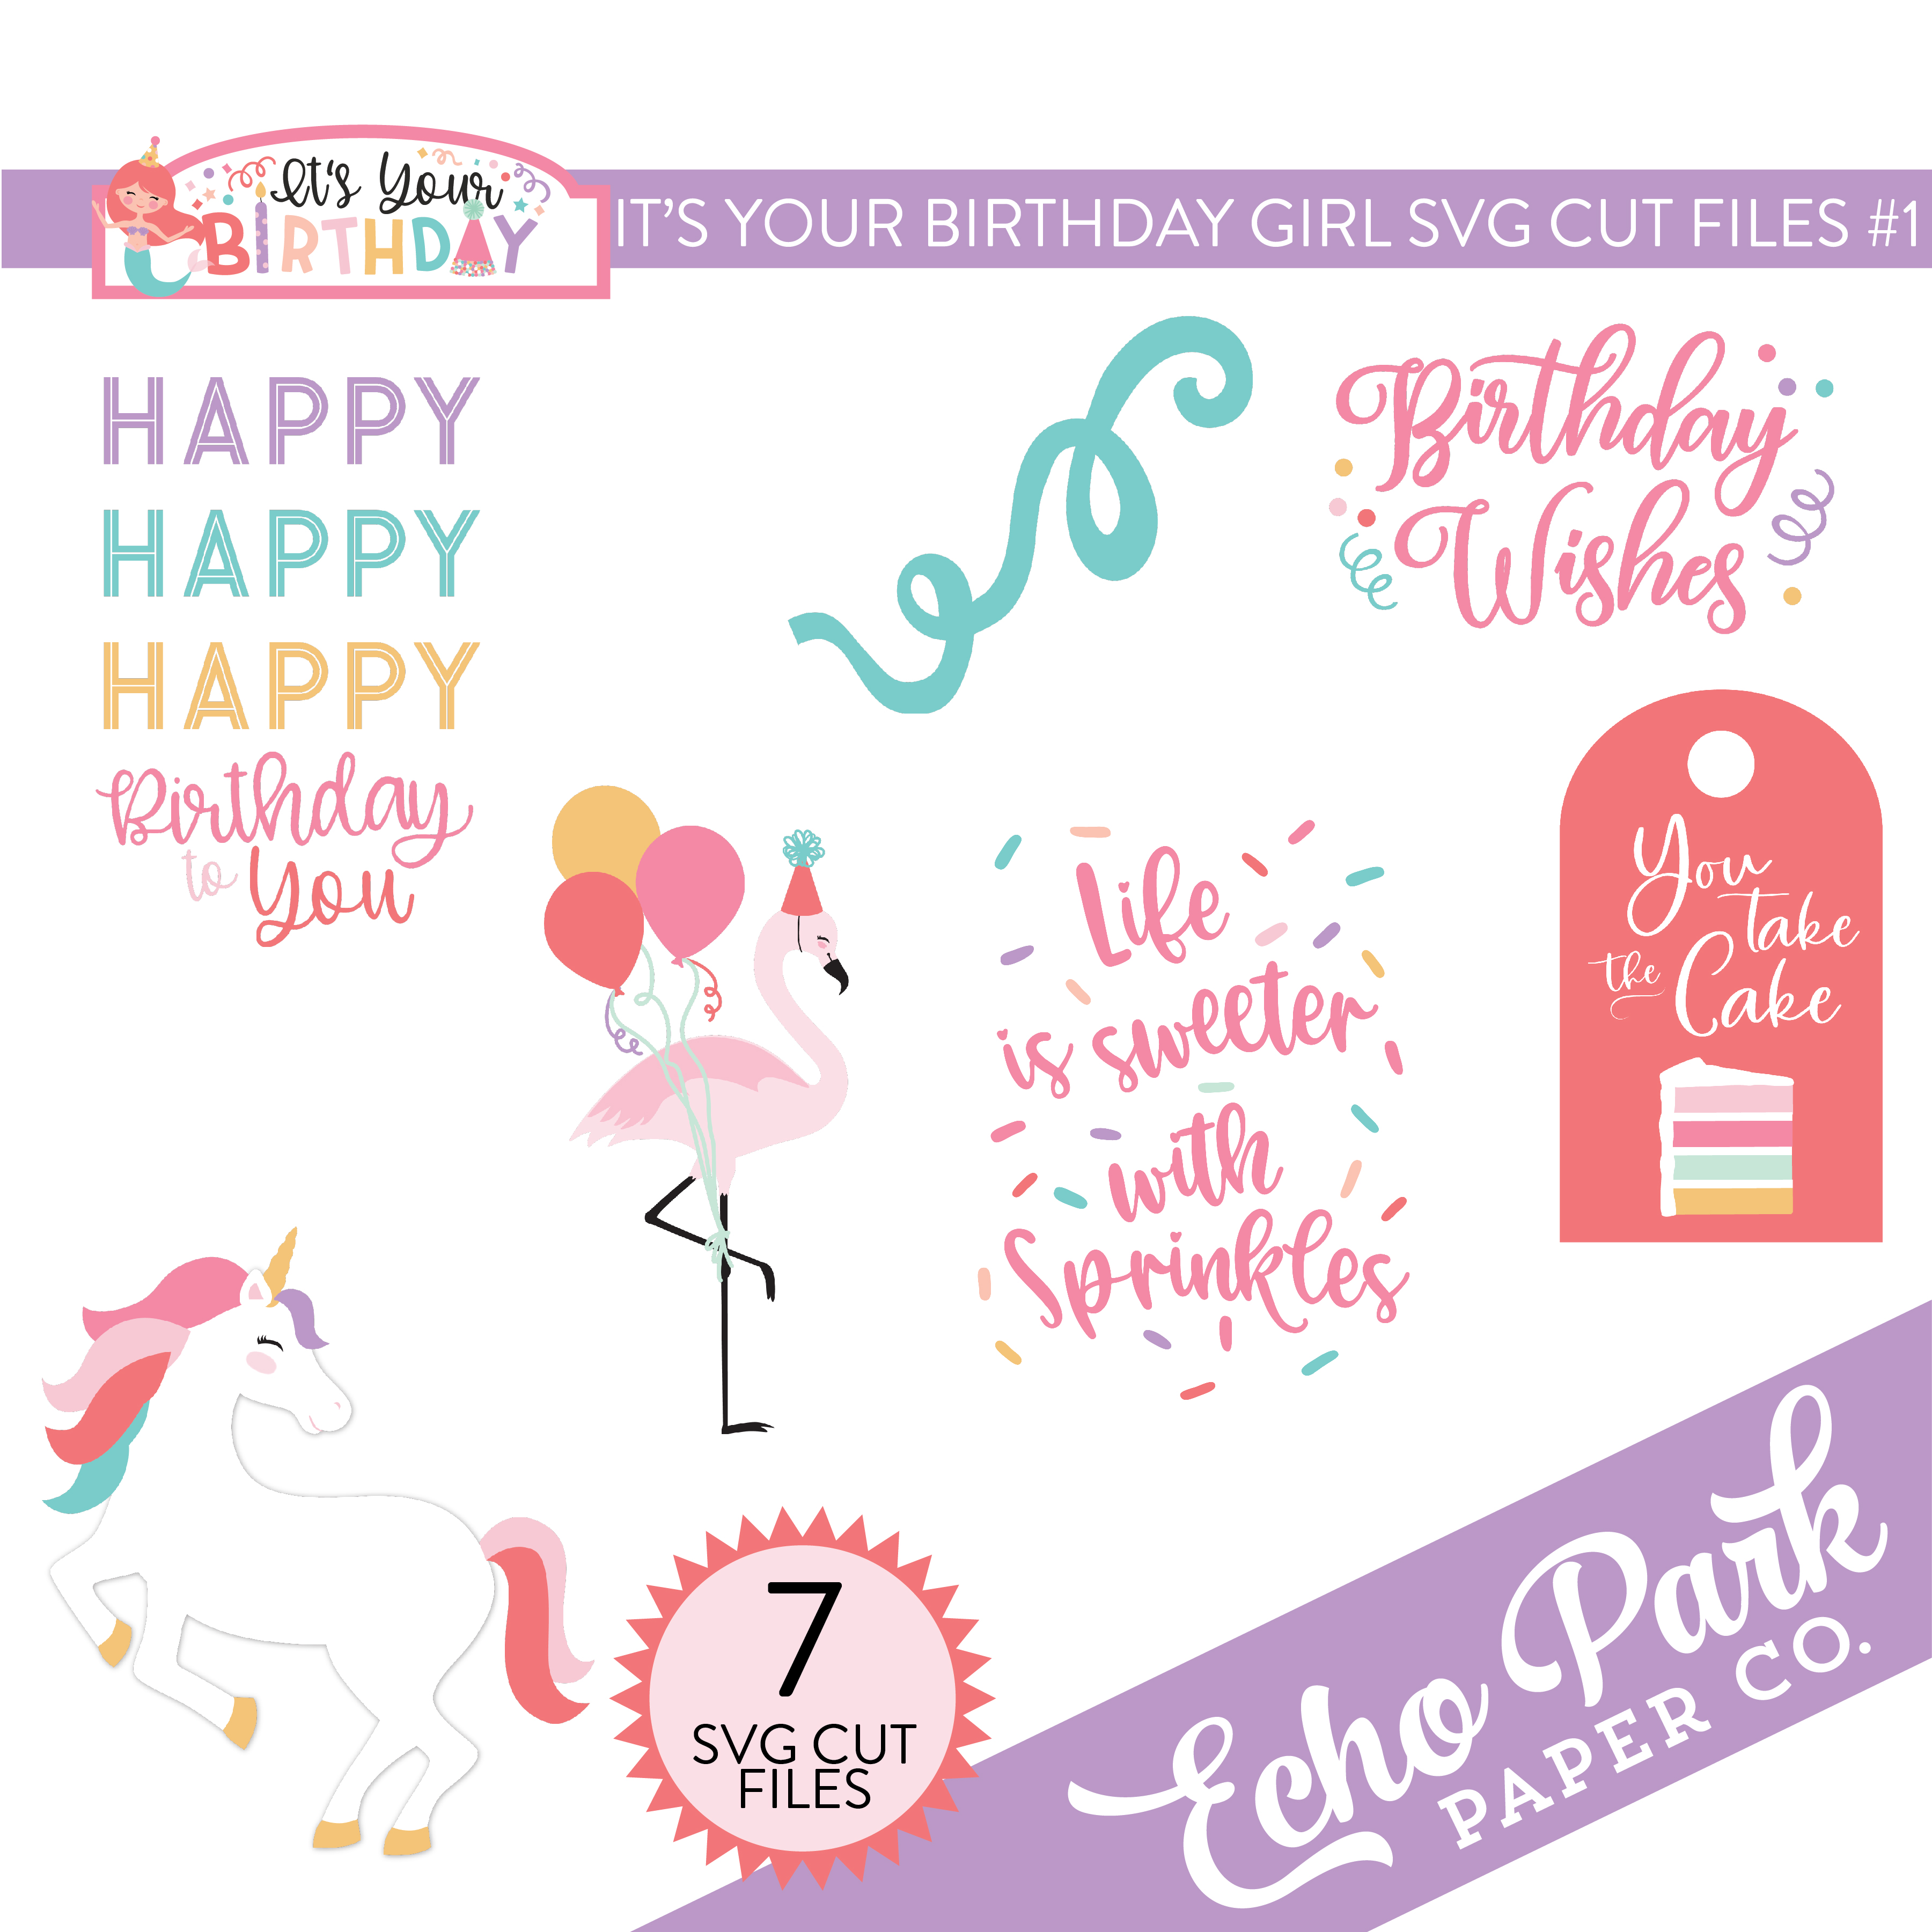 It's Your Birthday Girl SVG Cut Files #1